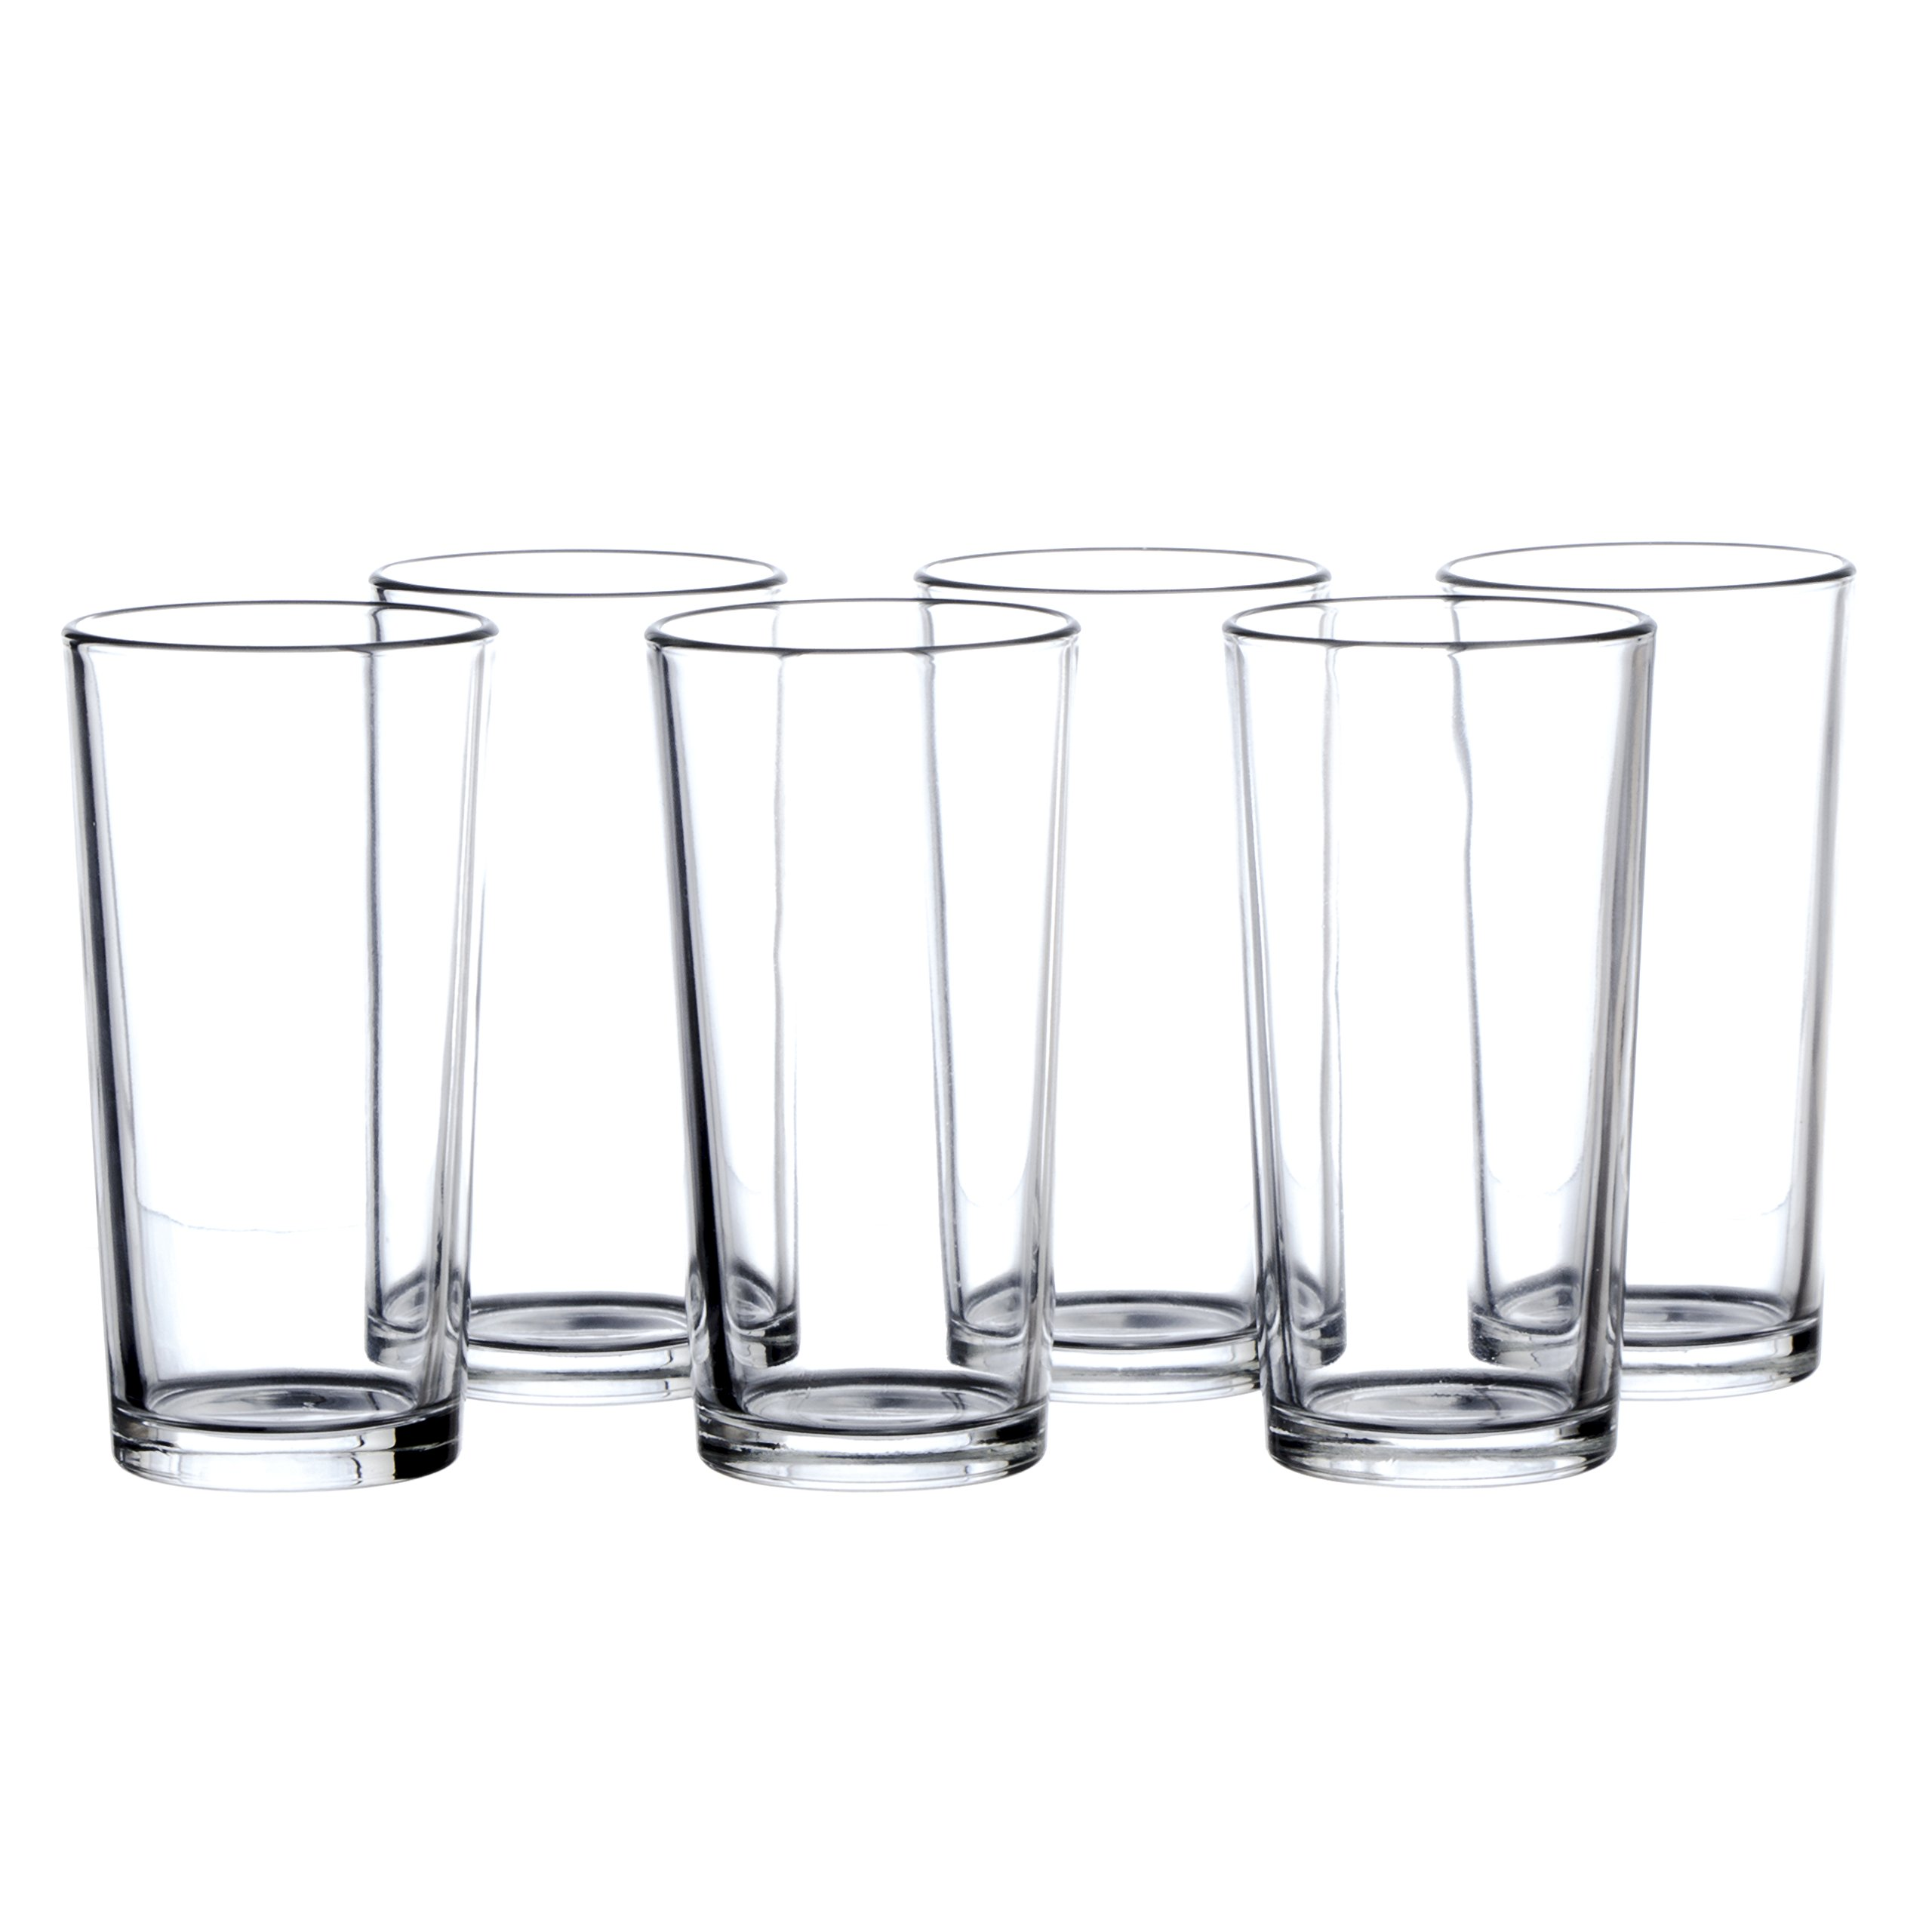 Highball Glasses Set, 12 Pieces, Clear Bar Glass, 7.8 Ounce (230 ml), Drinking Glassware for Water, Juice, Cold Beverages and Cocktails, Heavy Base